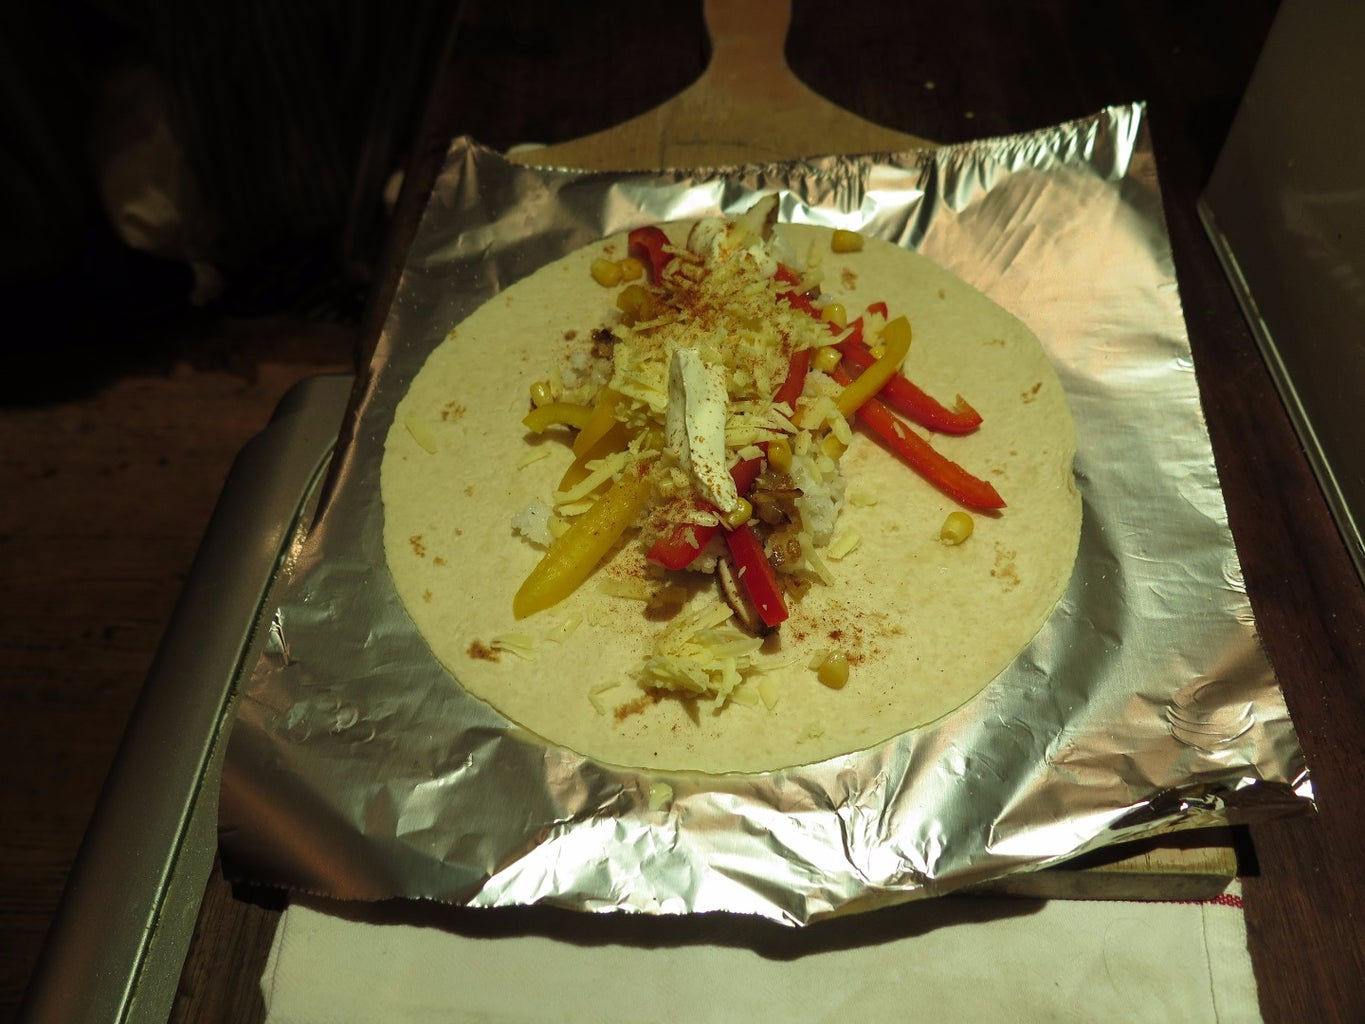 Wrapping the Burrito.